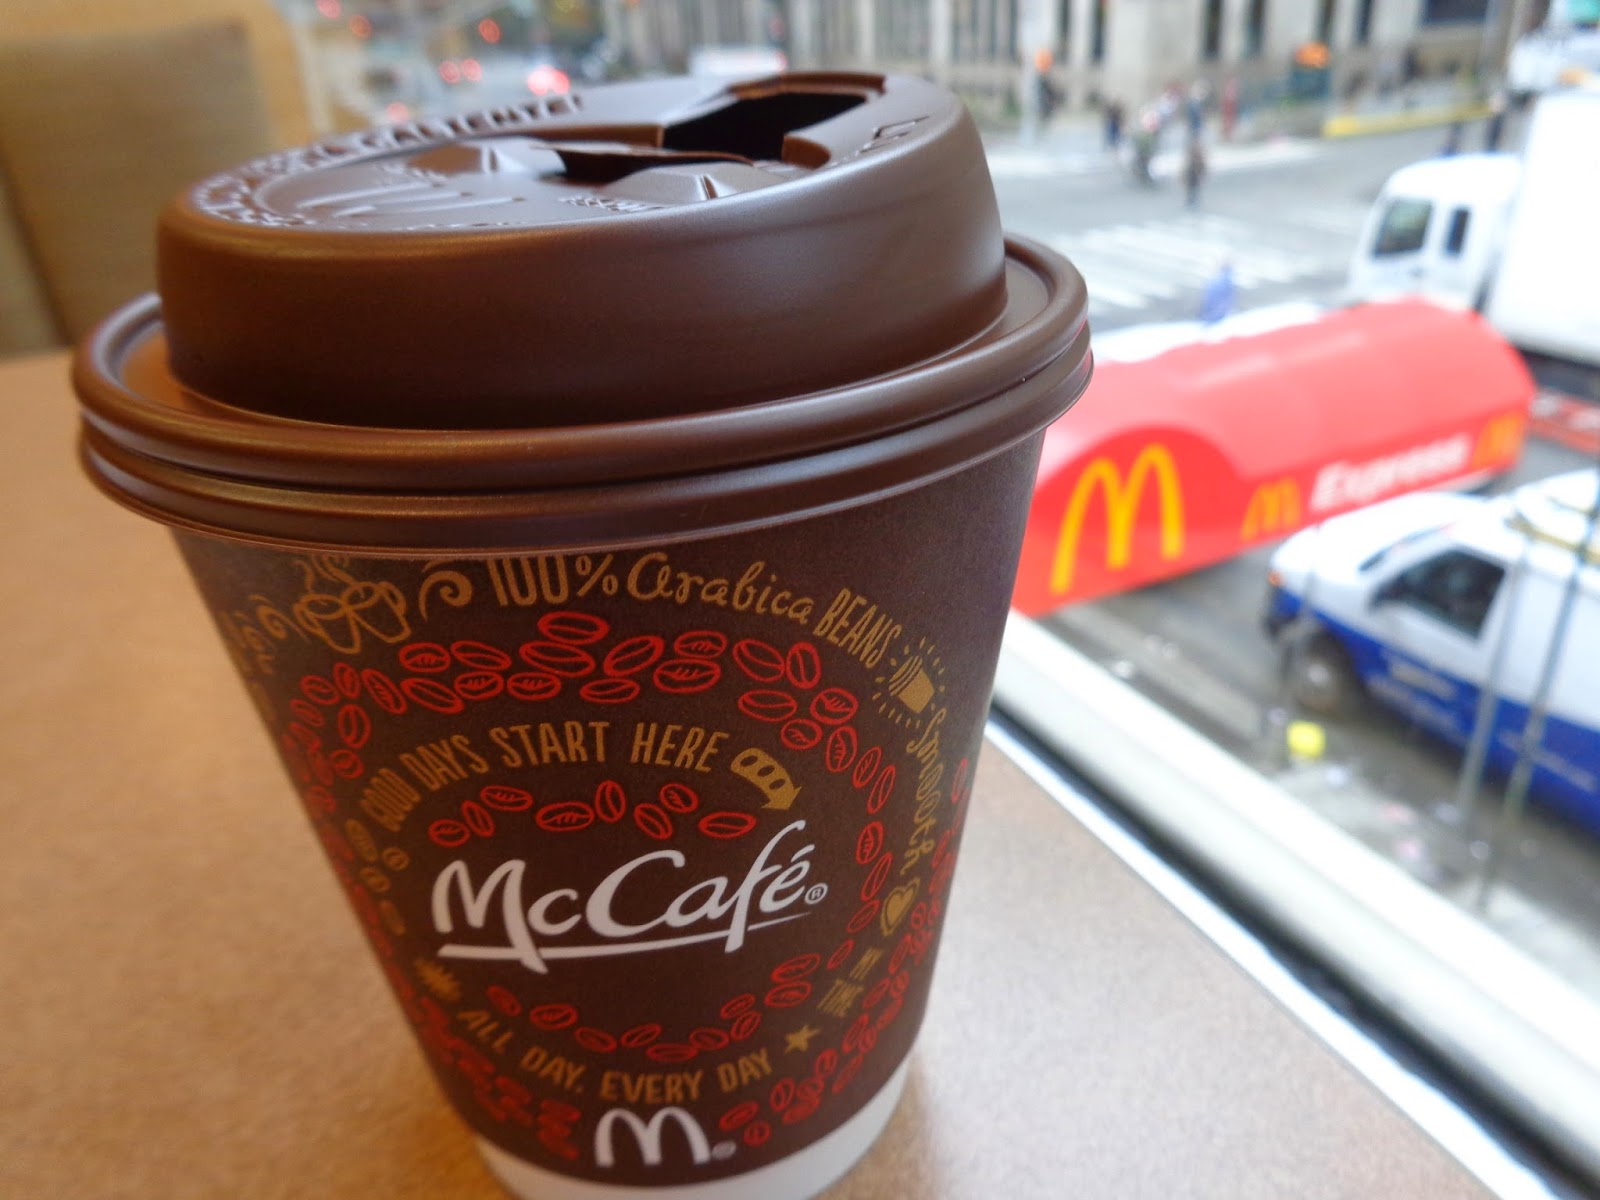 starbucks vs mcdonalds the breakfast wars Mcdonald's is stealing share from all the other players — starbucks, second cup and coffee time, as well as tim hortons, said robert carter, executive director at npd.